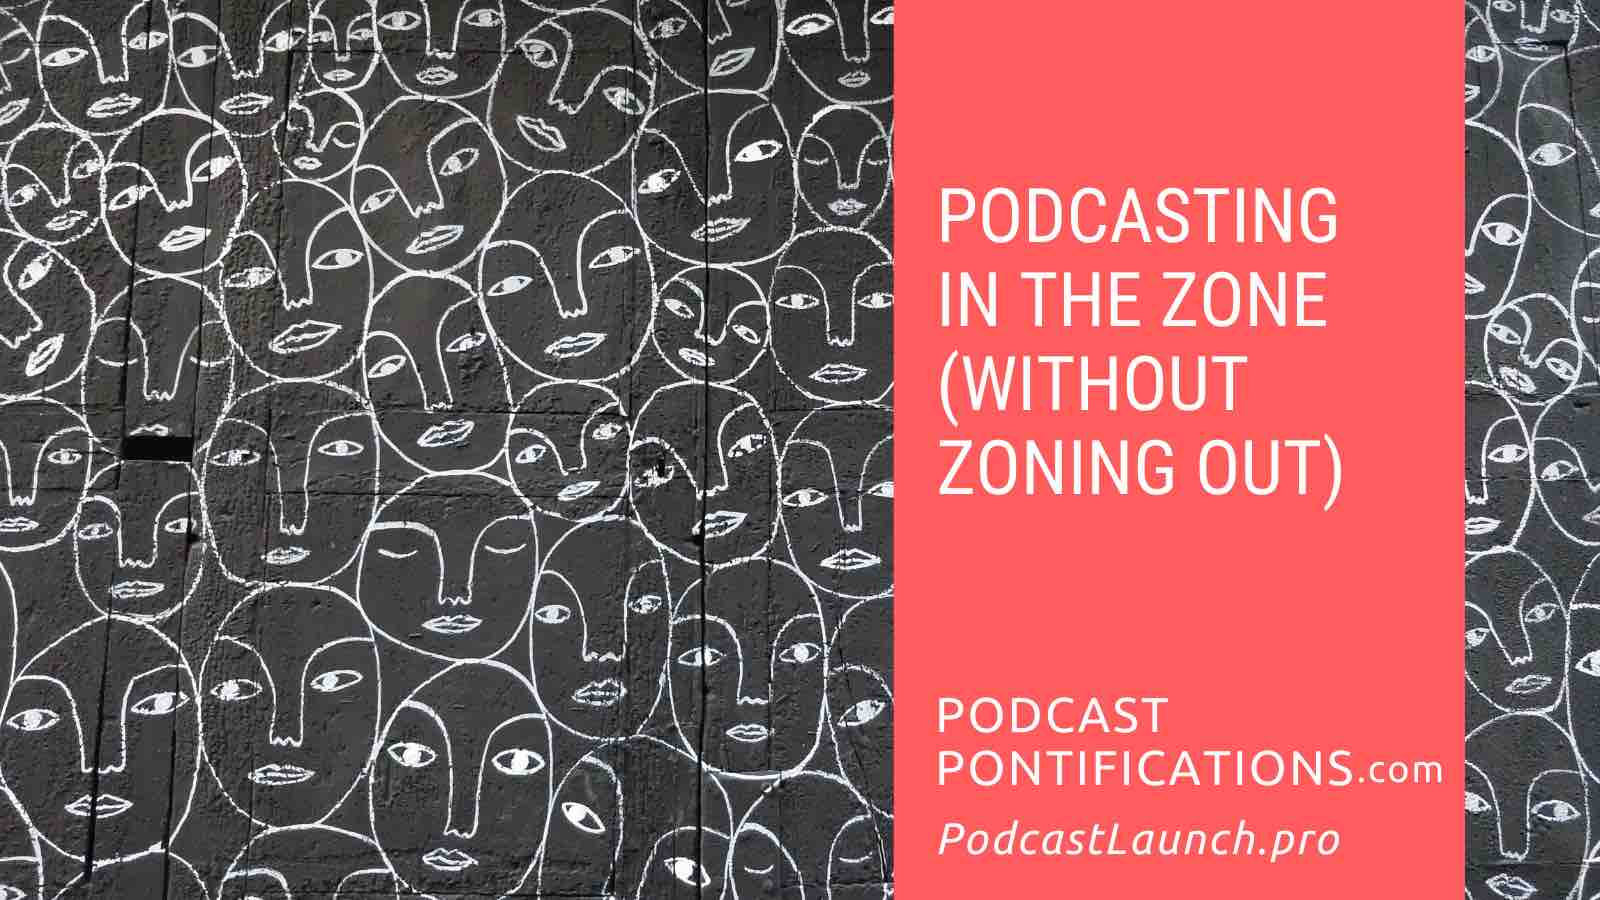 Podcasting In The Zone (Without Zoning Out)